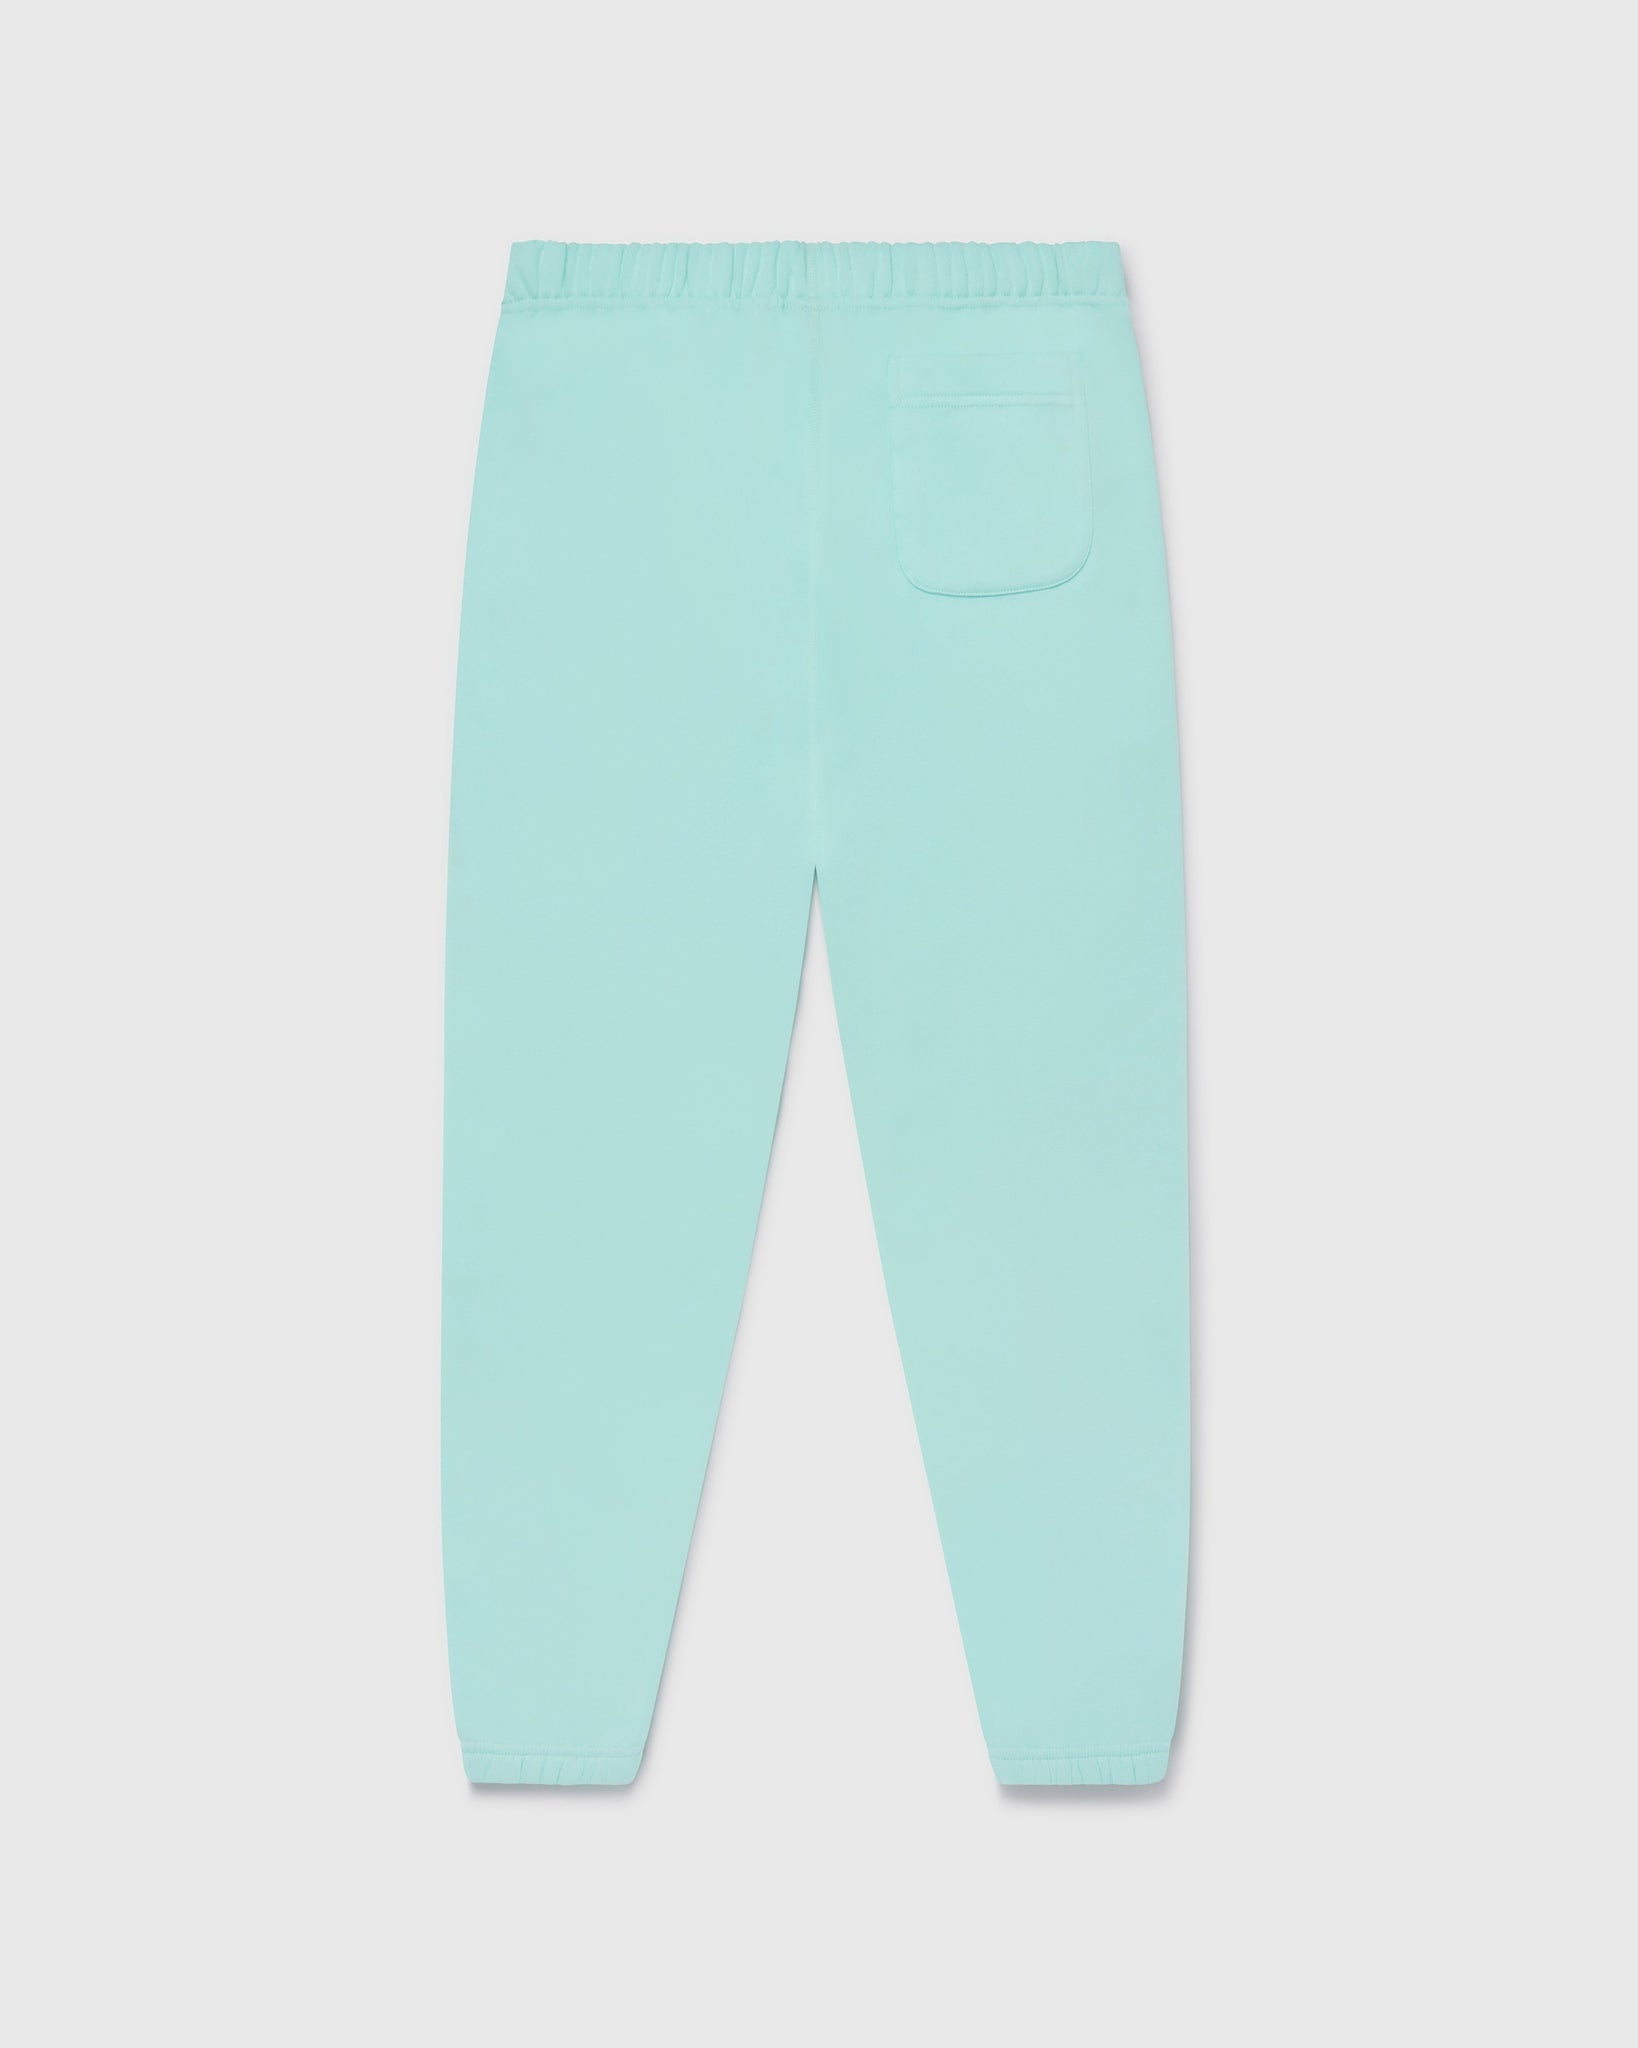 WORLD TOUR SWEATPANT - AQUA BLUE IMAGE #2